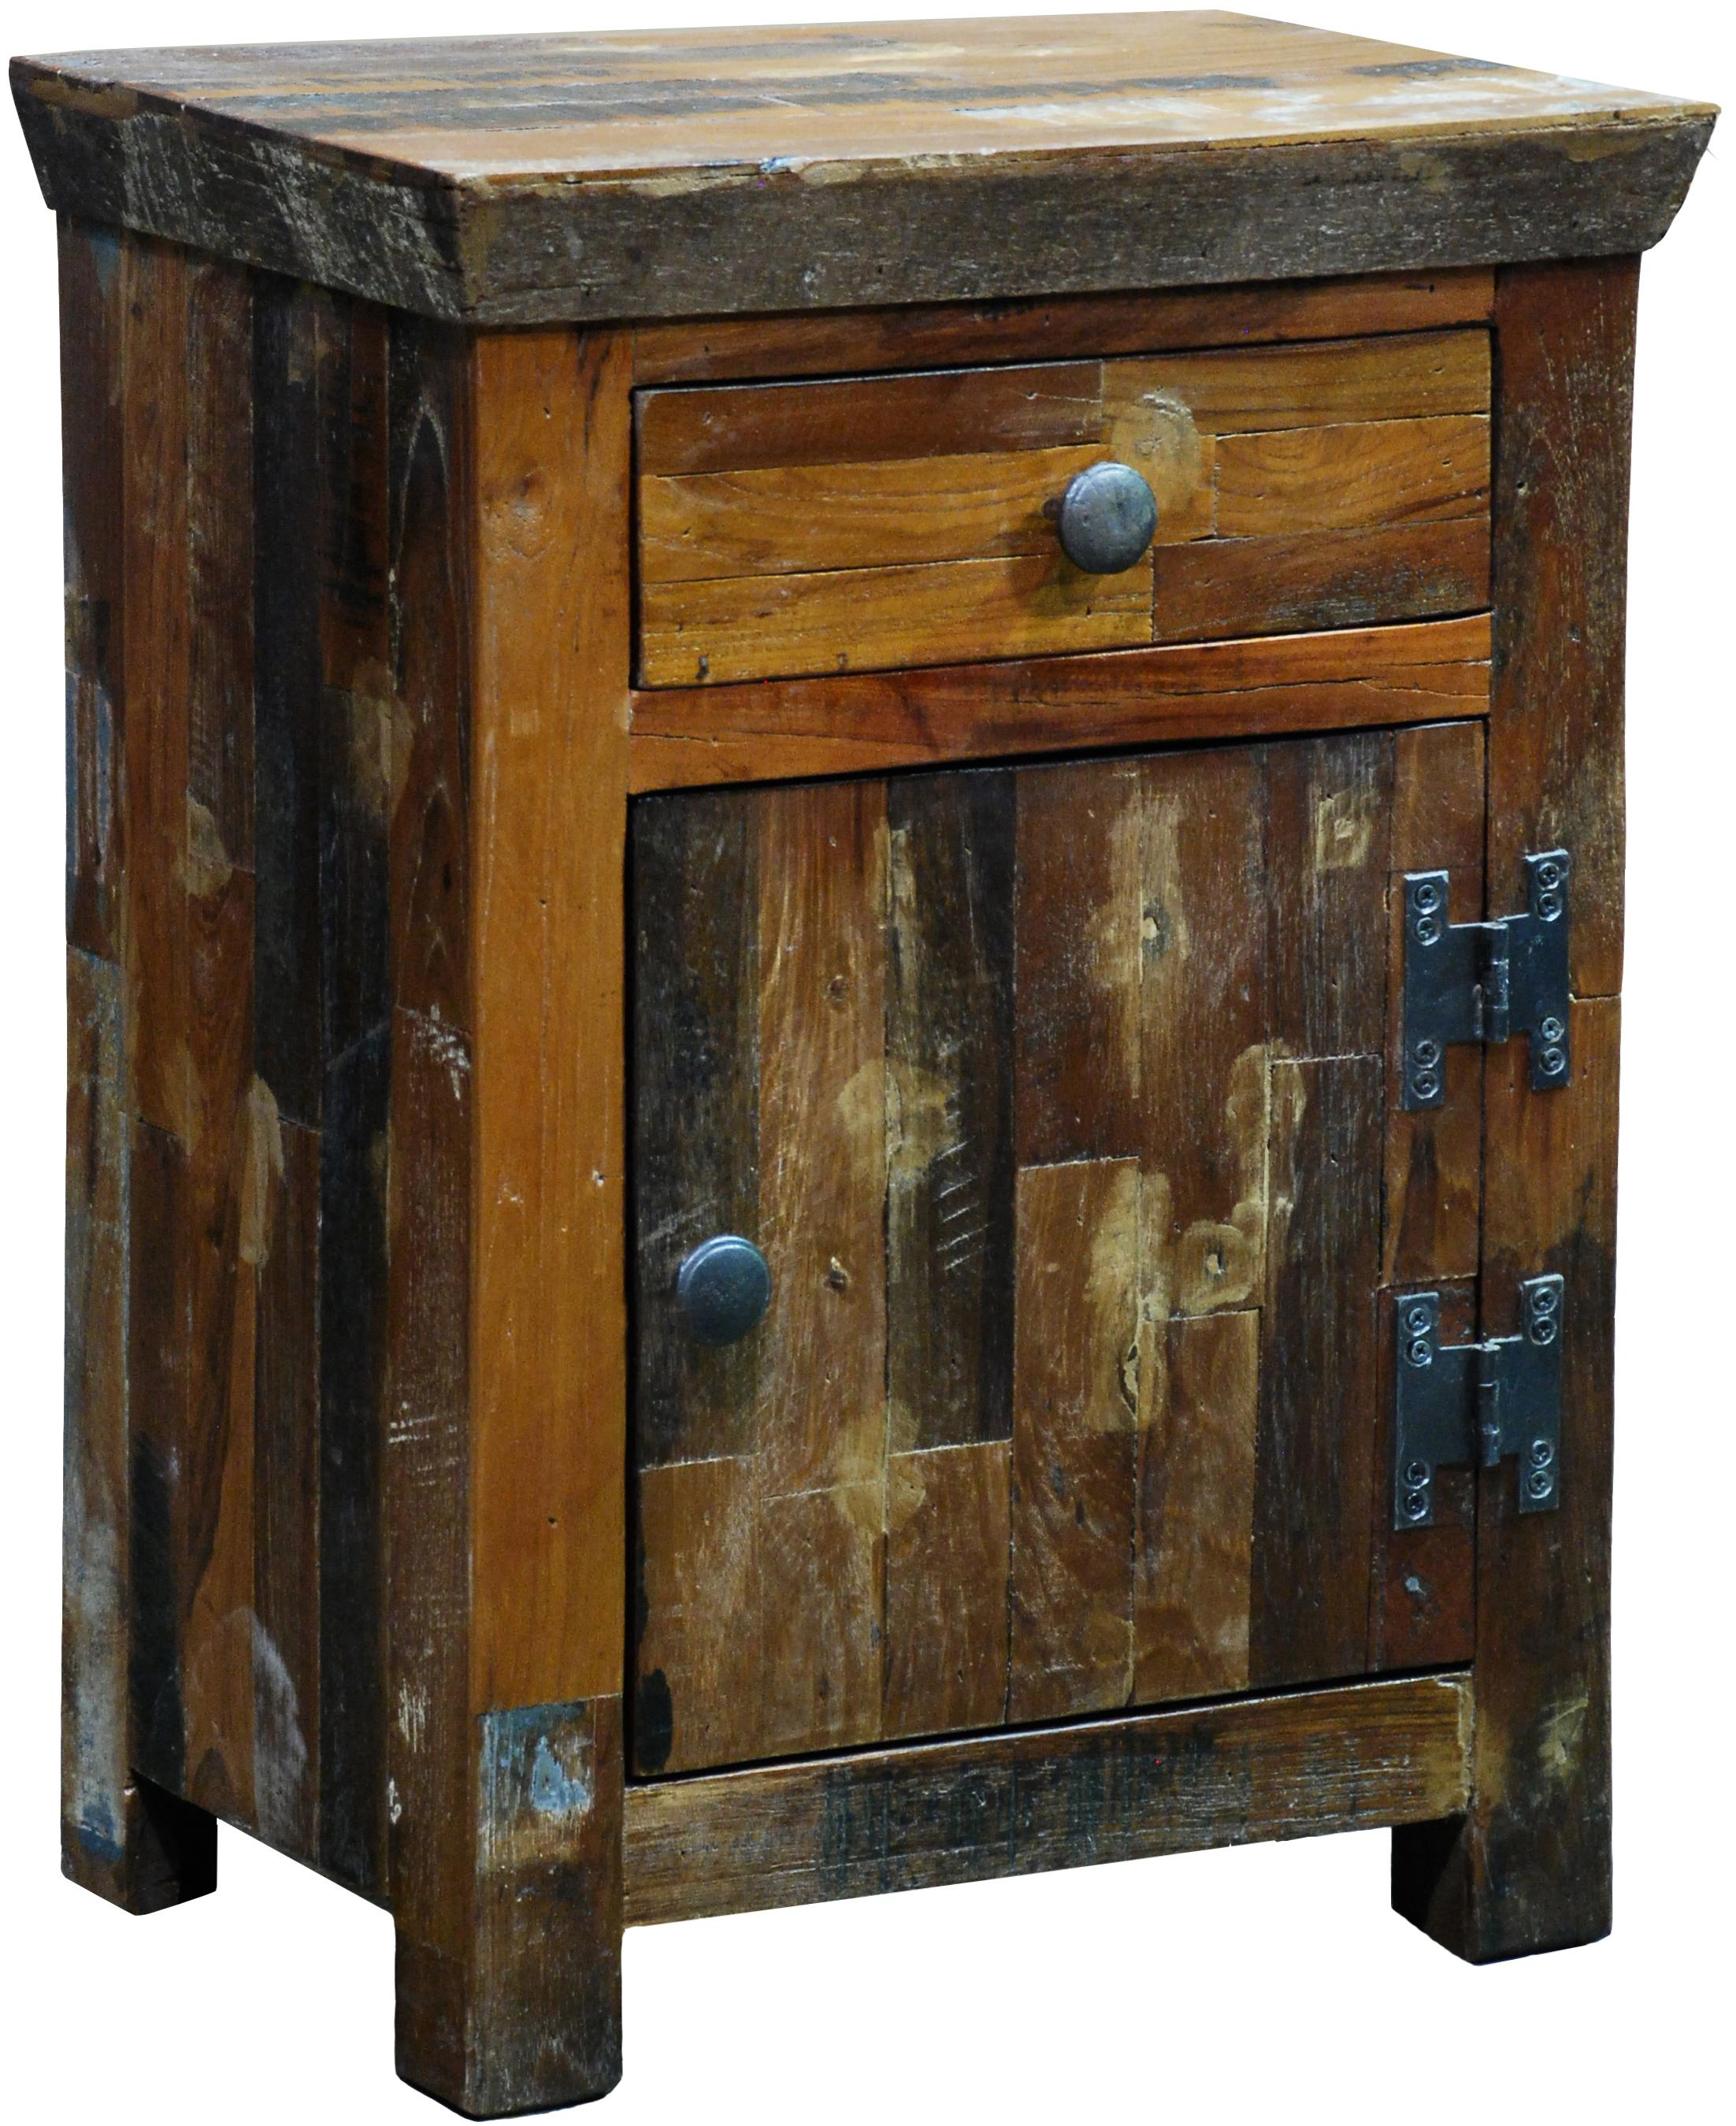 Classic home cambria sonoma nightstand with one drawer for Classic home furniture jacksonville fl